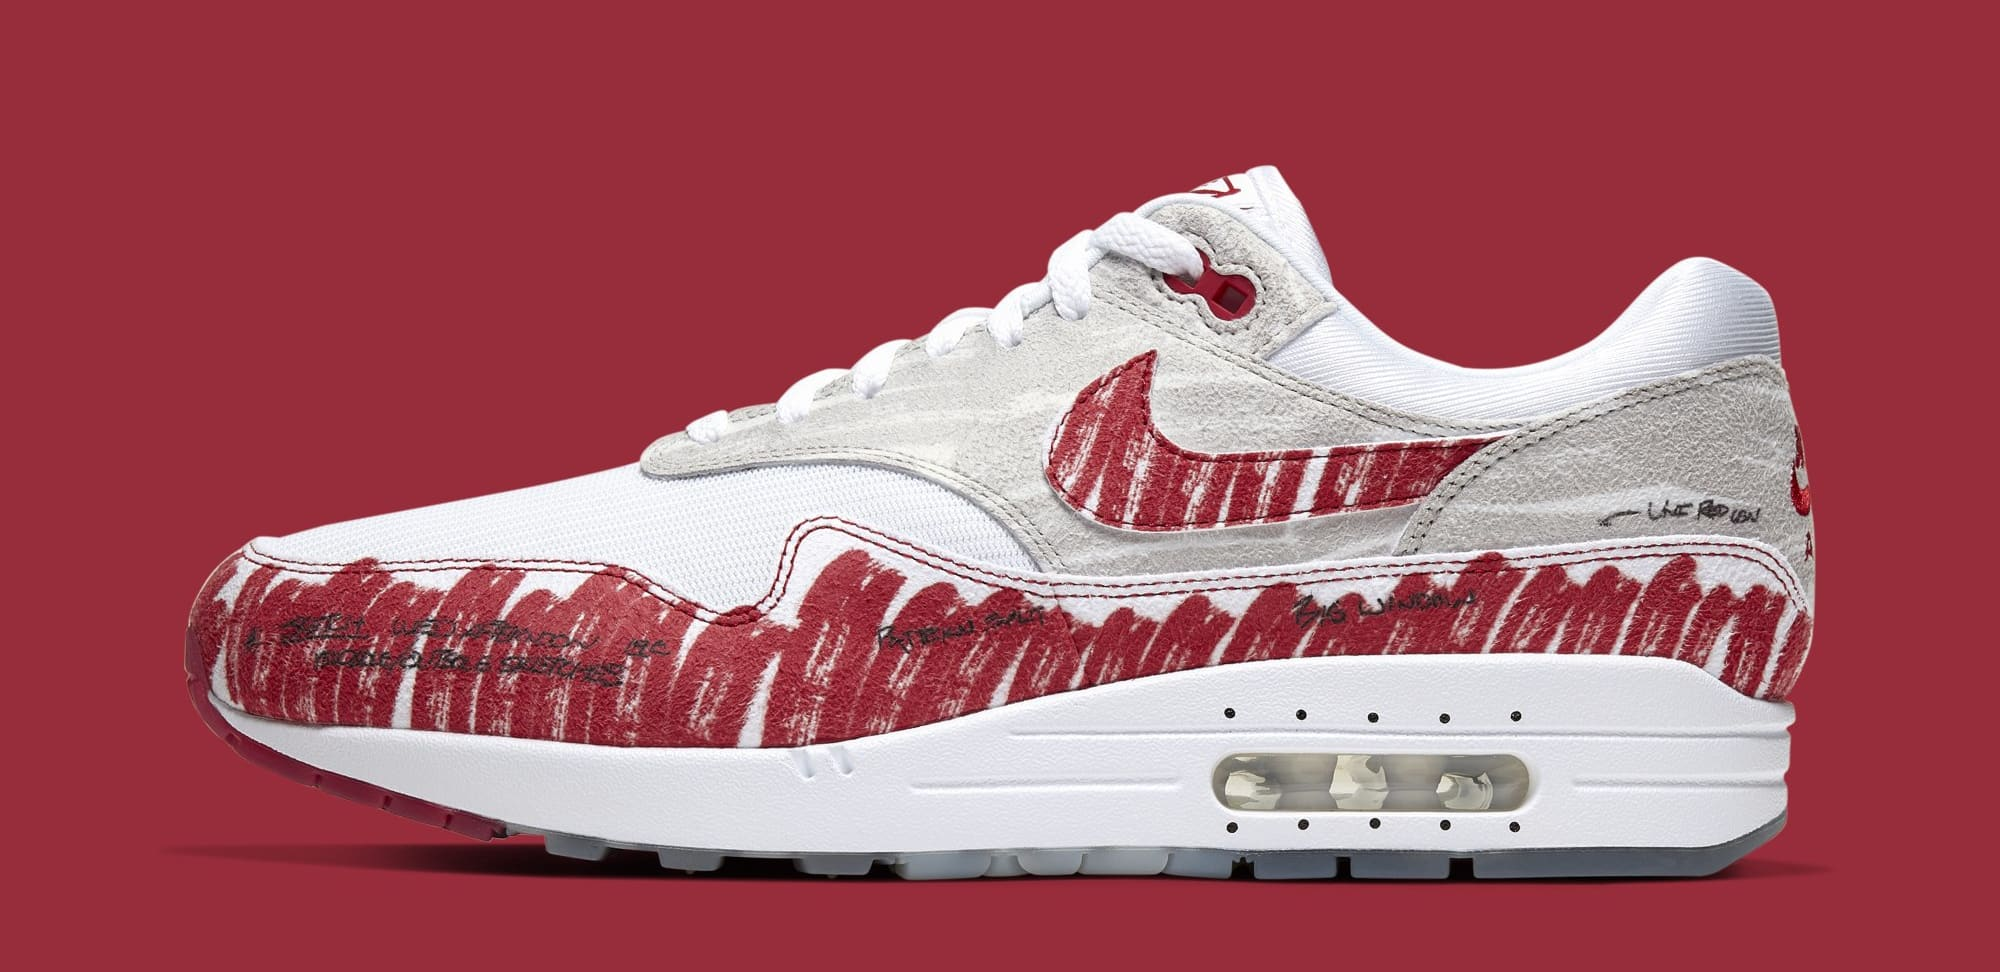 Nike Air Max 1 'Sketch to Shelf' CJ4286-101 (Lateral)